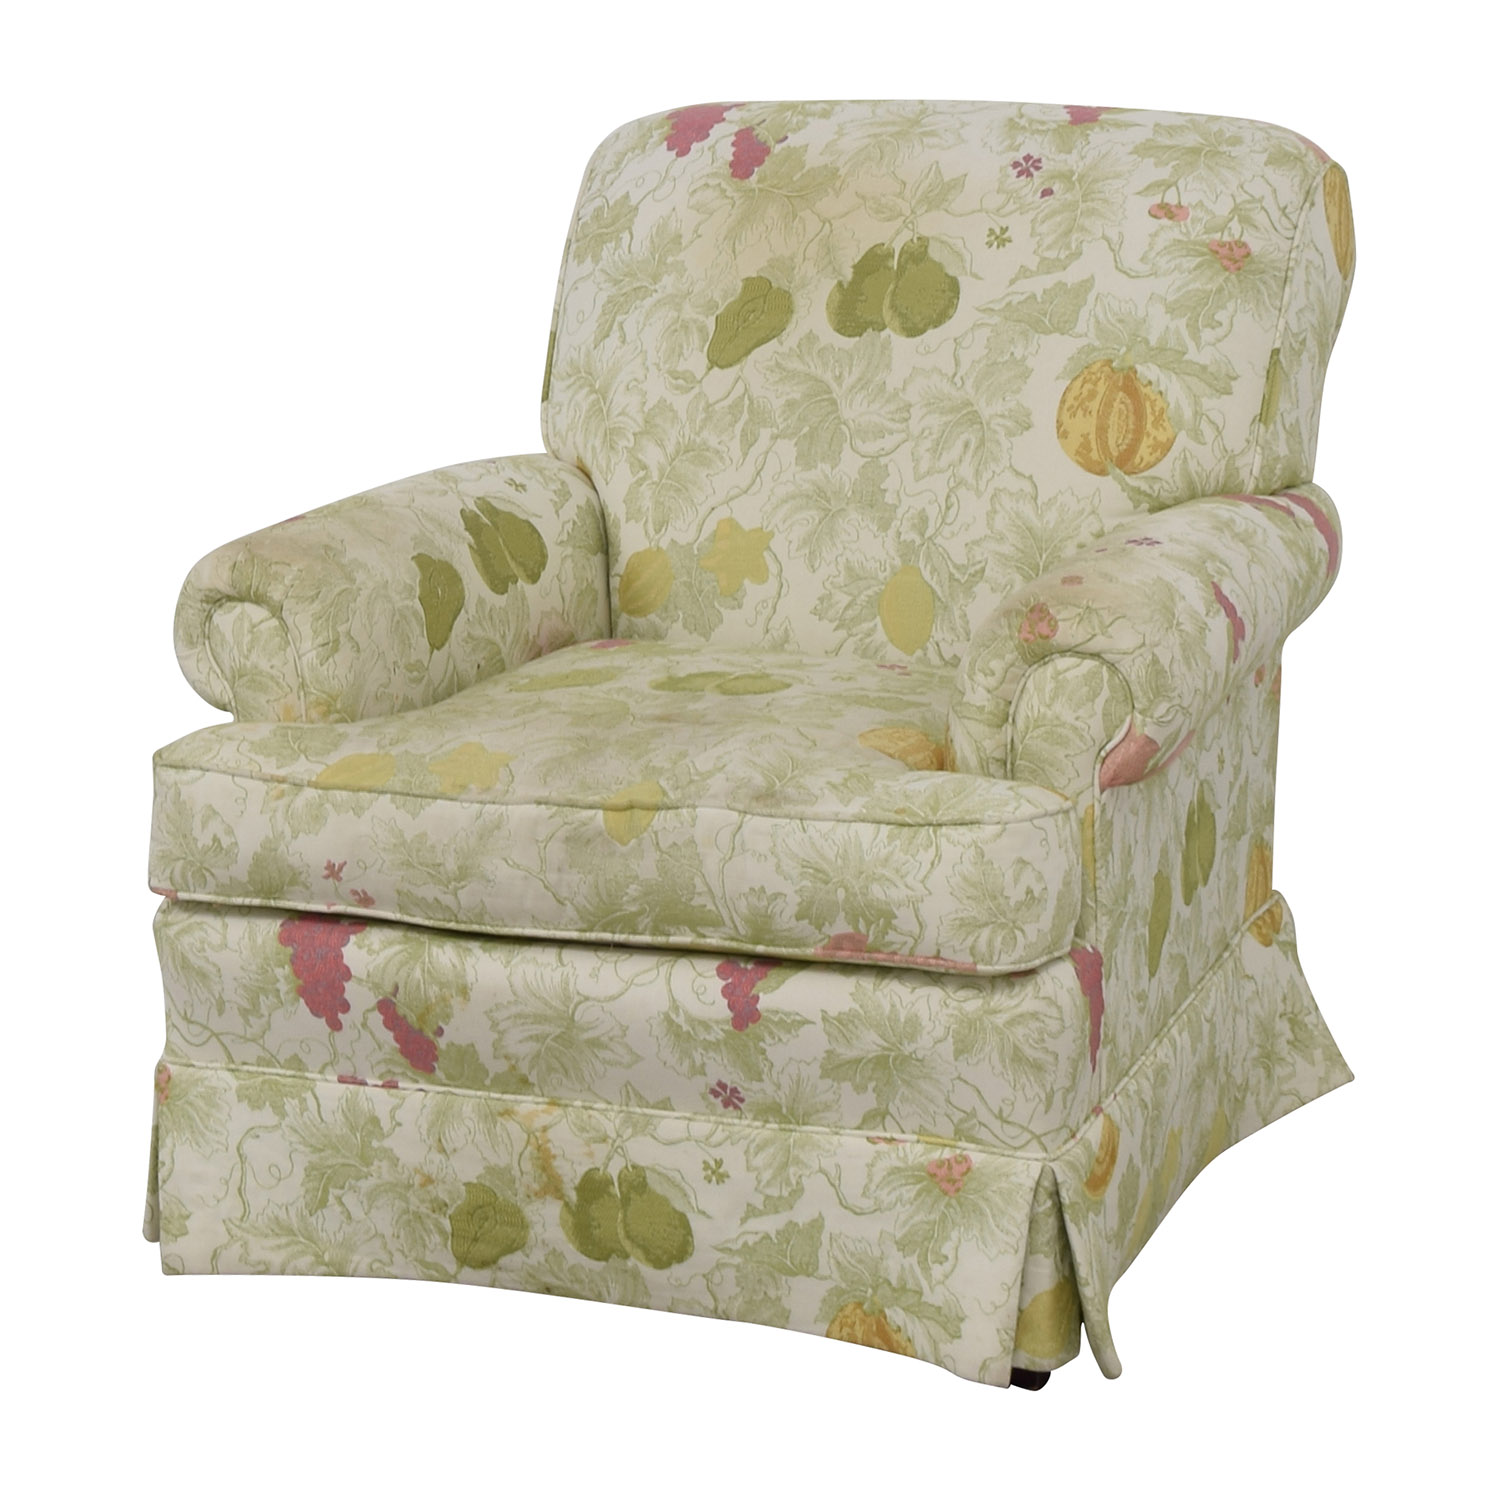 79% OFF Sherrill Sherrill Fruit Patterned Accent Chair Chairs